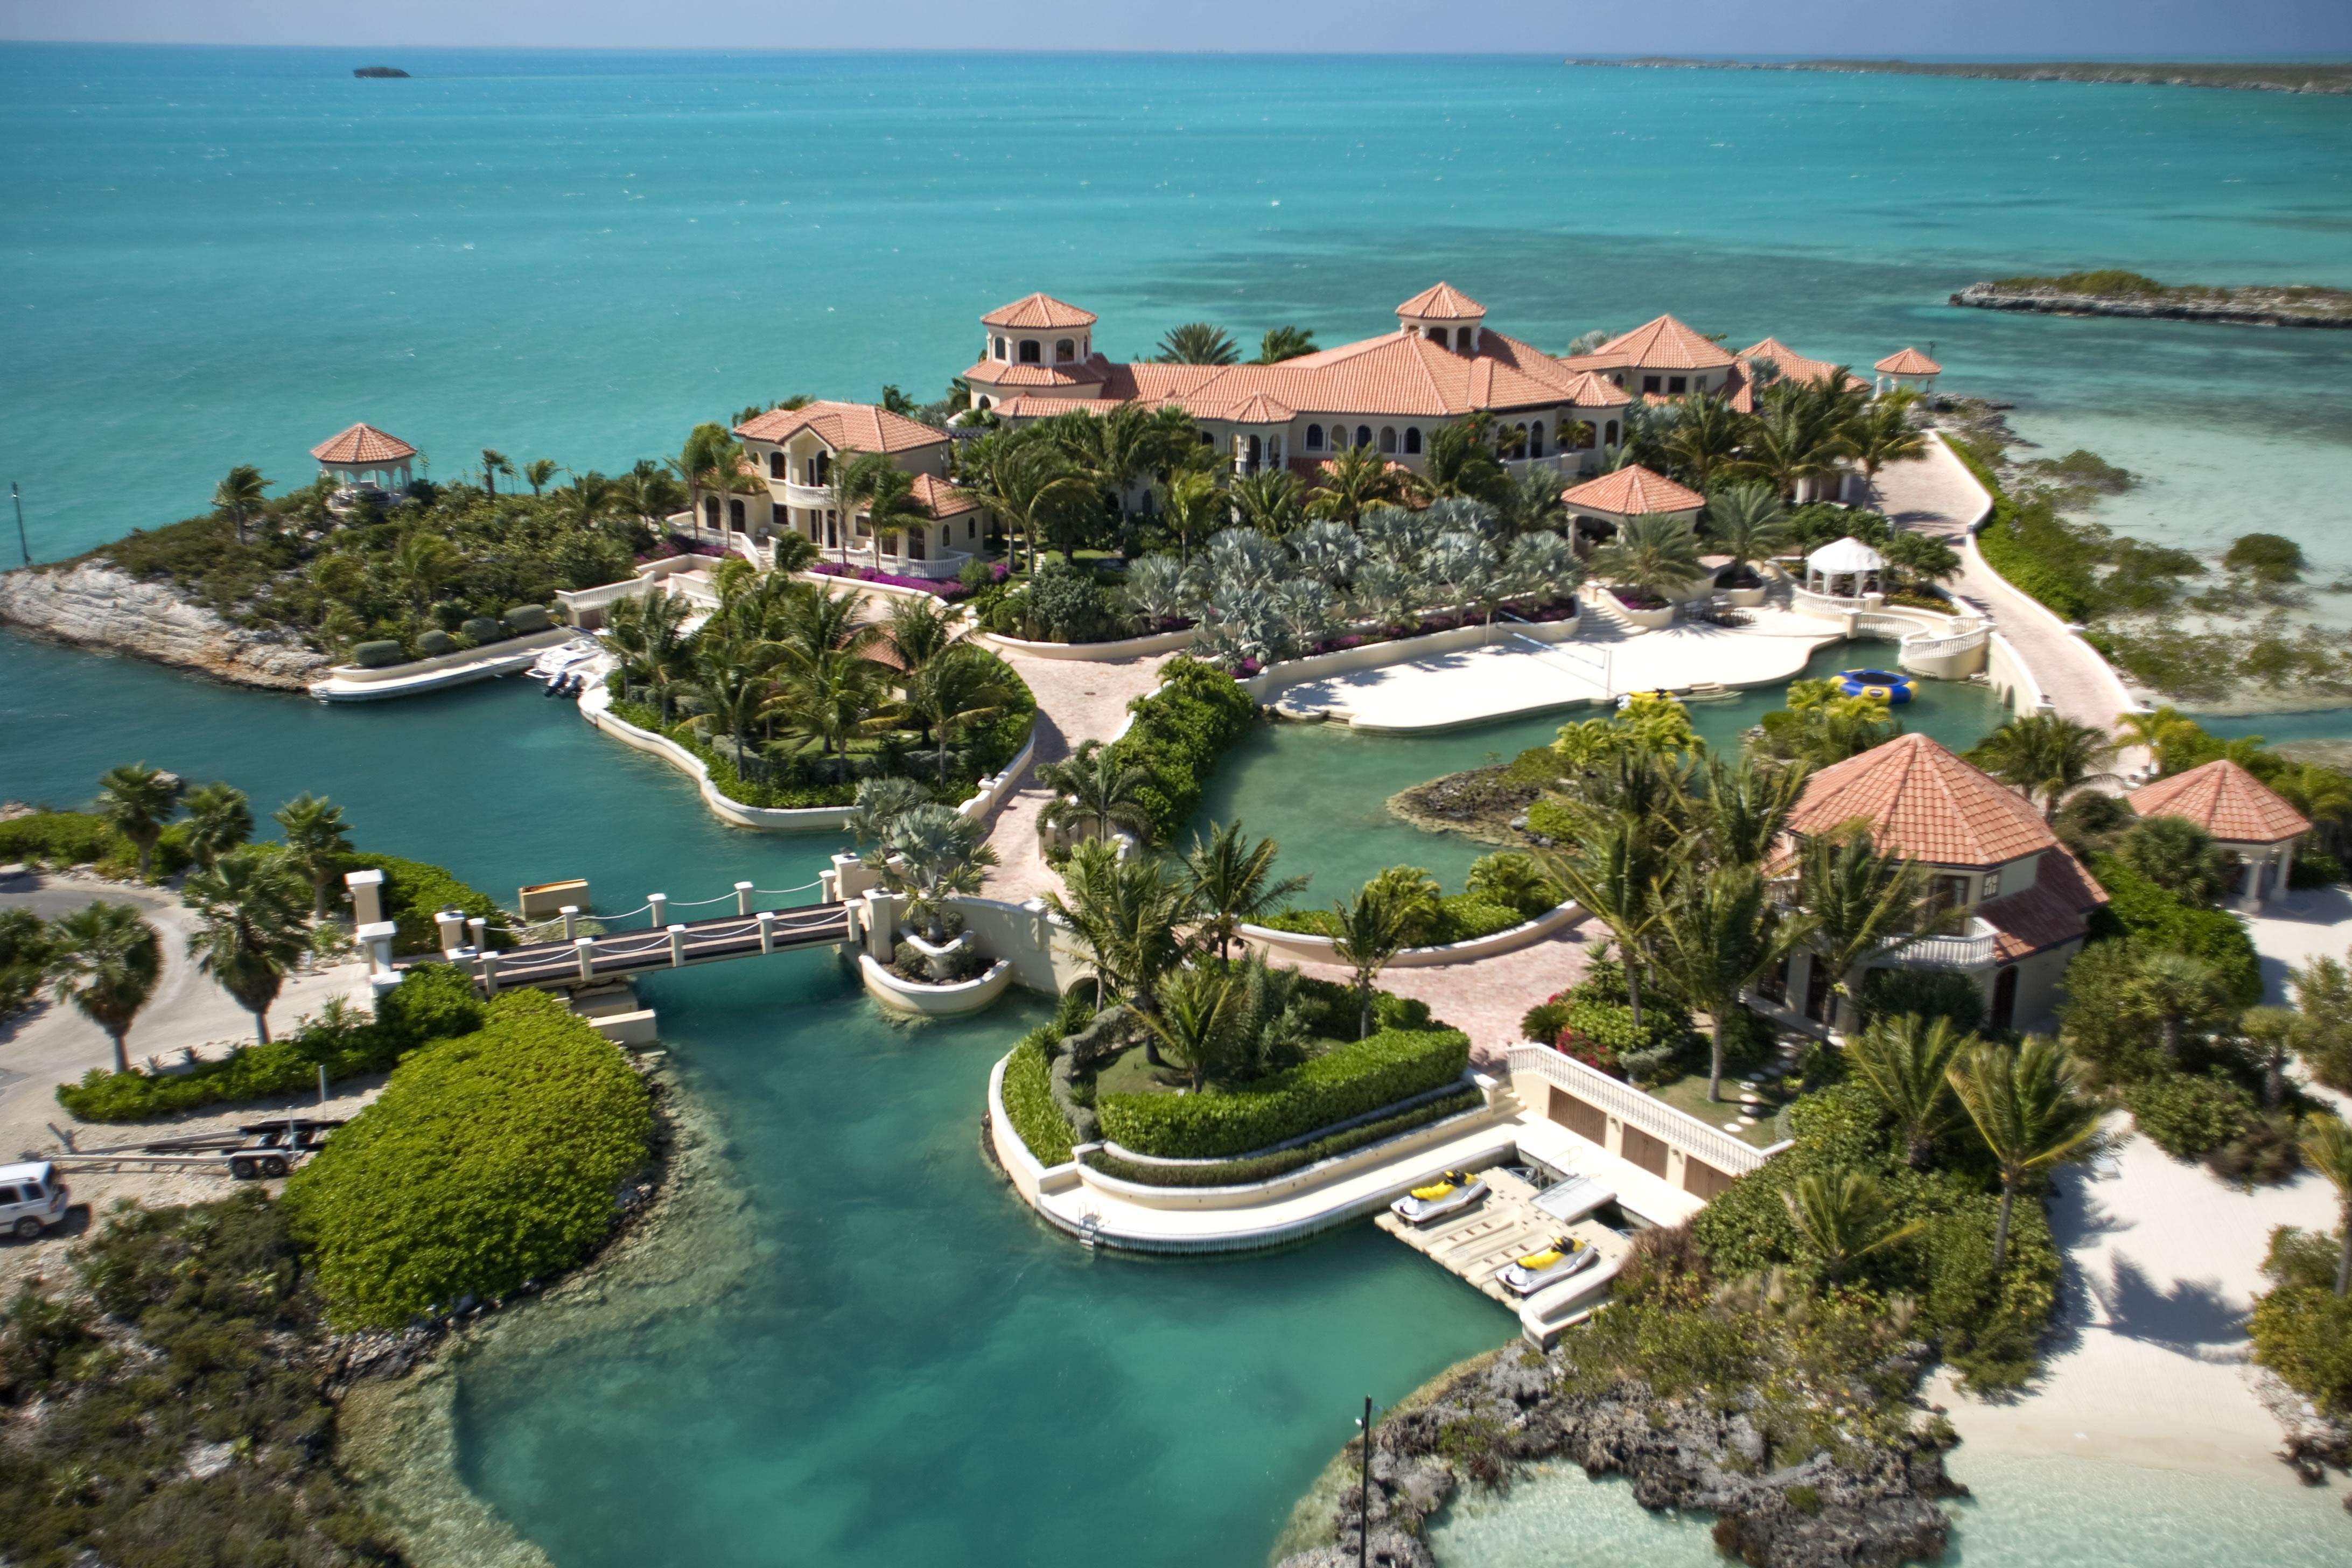 emerald cay turks and caicos 10 Celebrities Who Have Their Own Private Islands